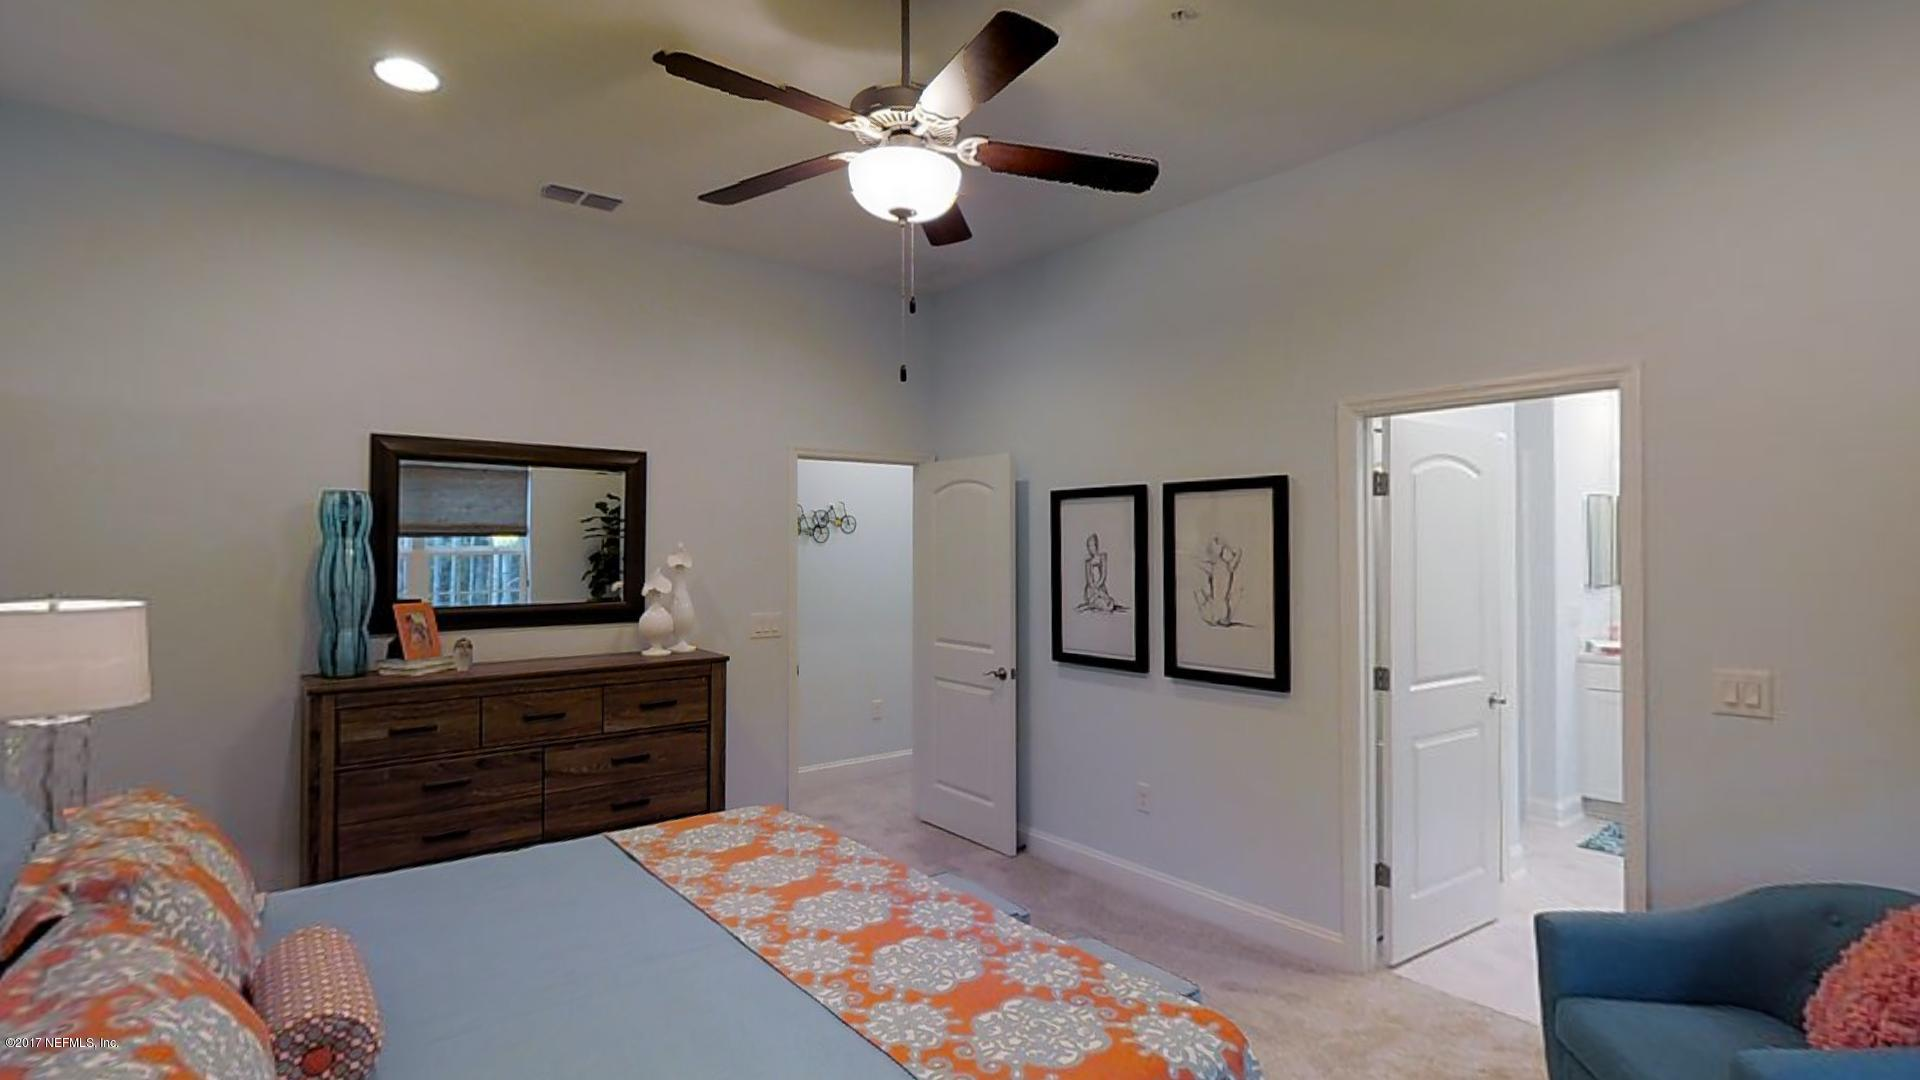 196 GRAND RAVINE, ST AUGUSTINE, FLORIDA 32086, ,2 BathroomsBathrooms,Residential - condos/townhomes,For sale,GRAND RAVINE,917661